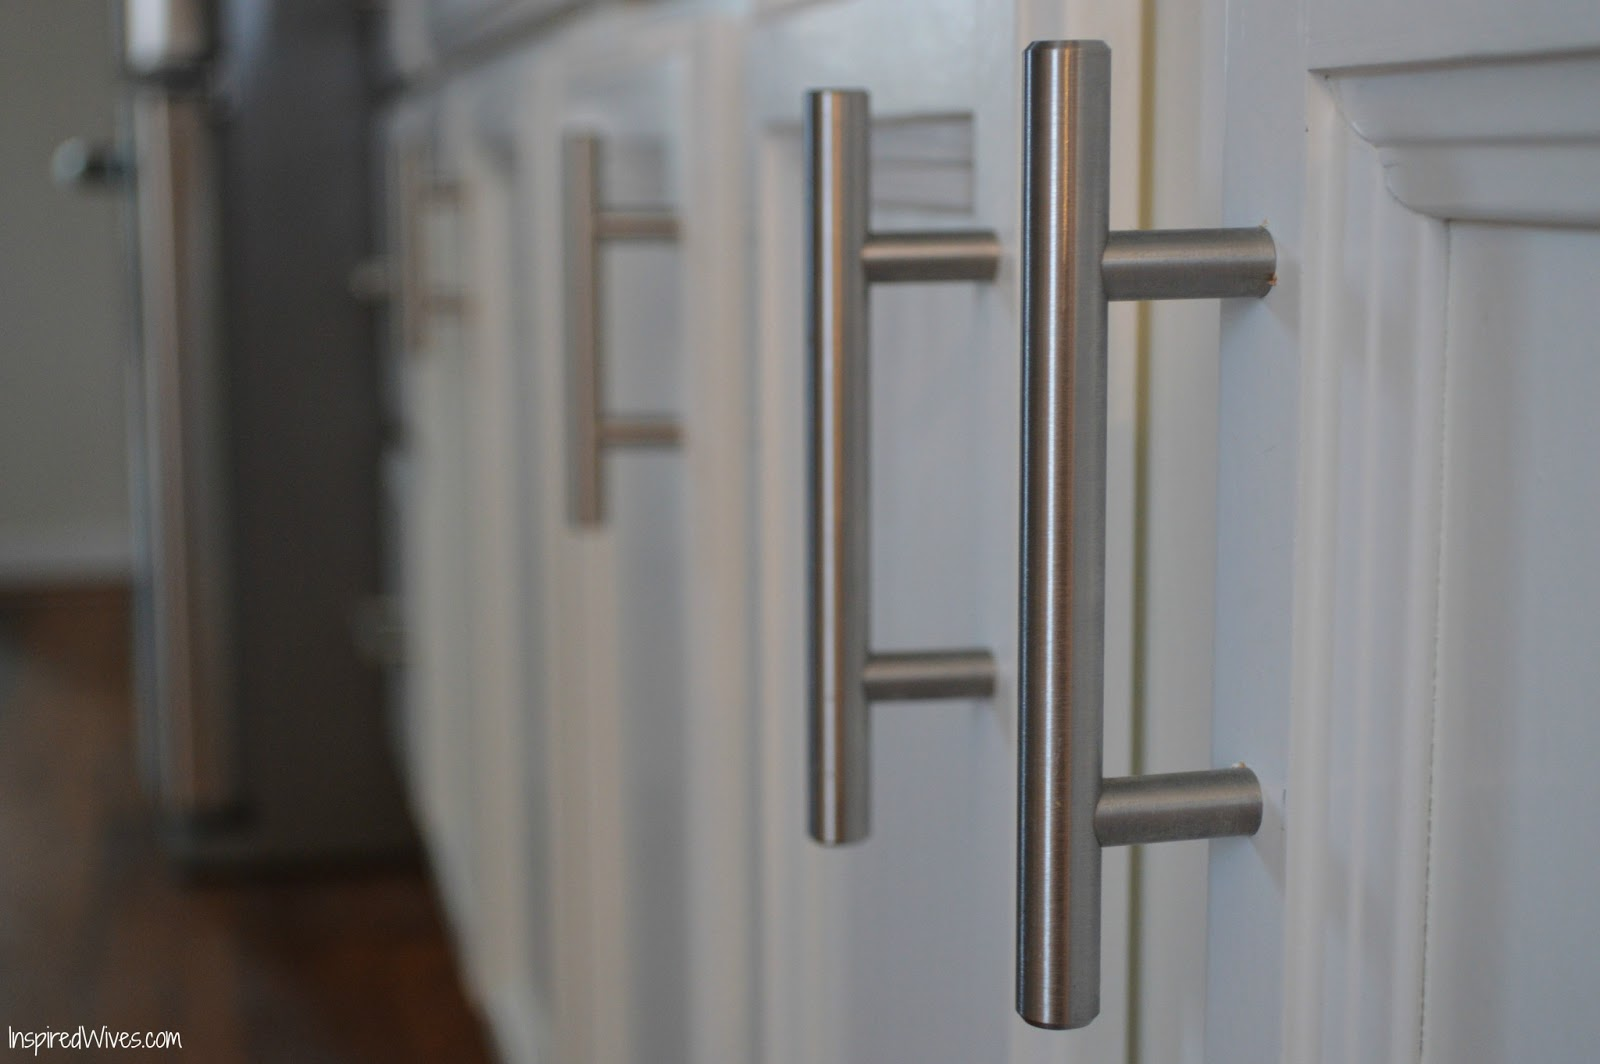 Inspired Wives: Adding Hardware to Kitchen Cabinets